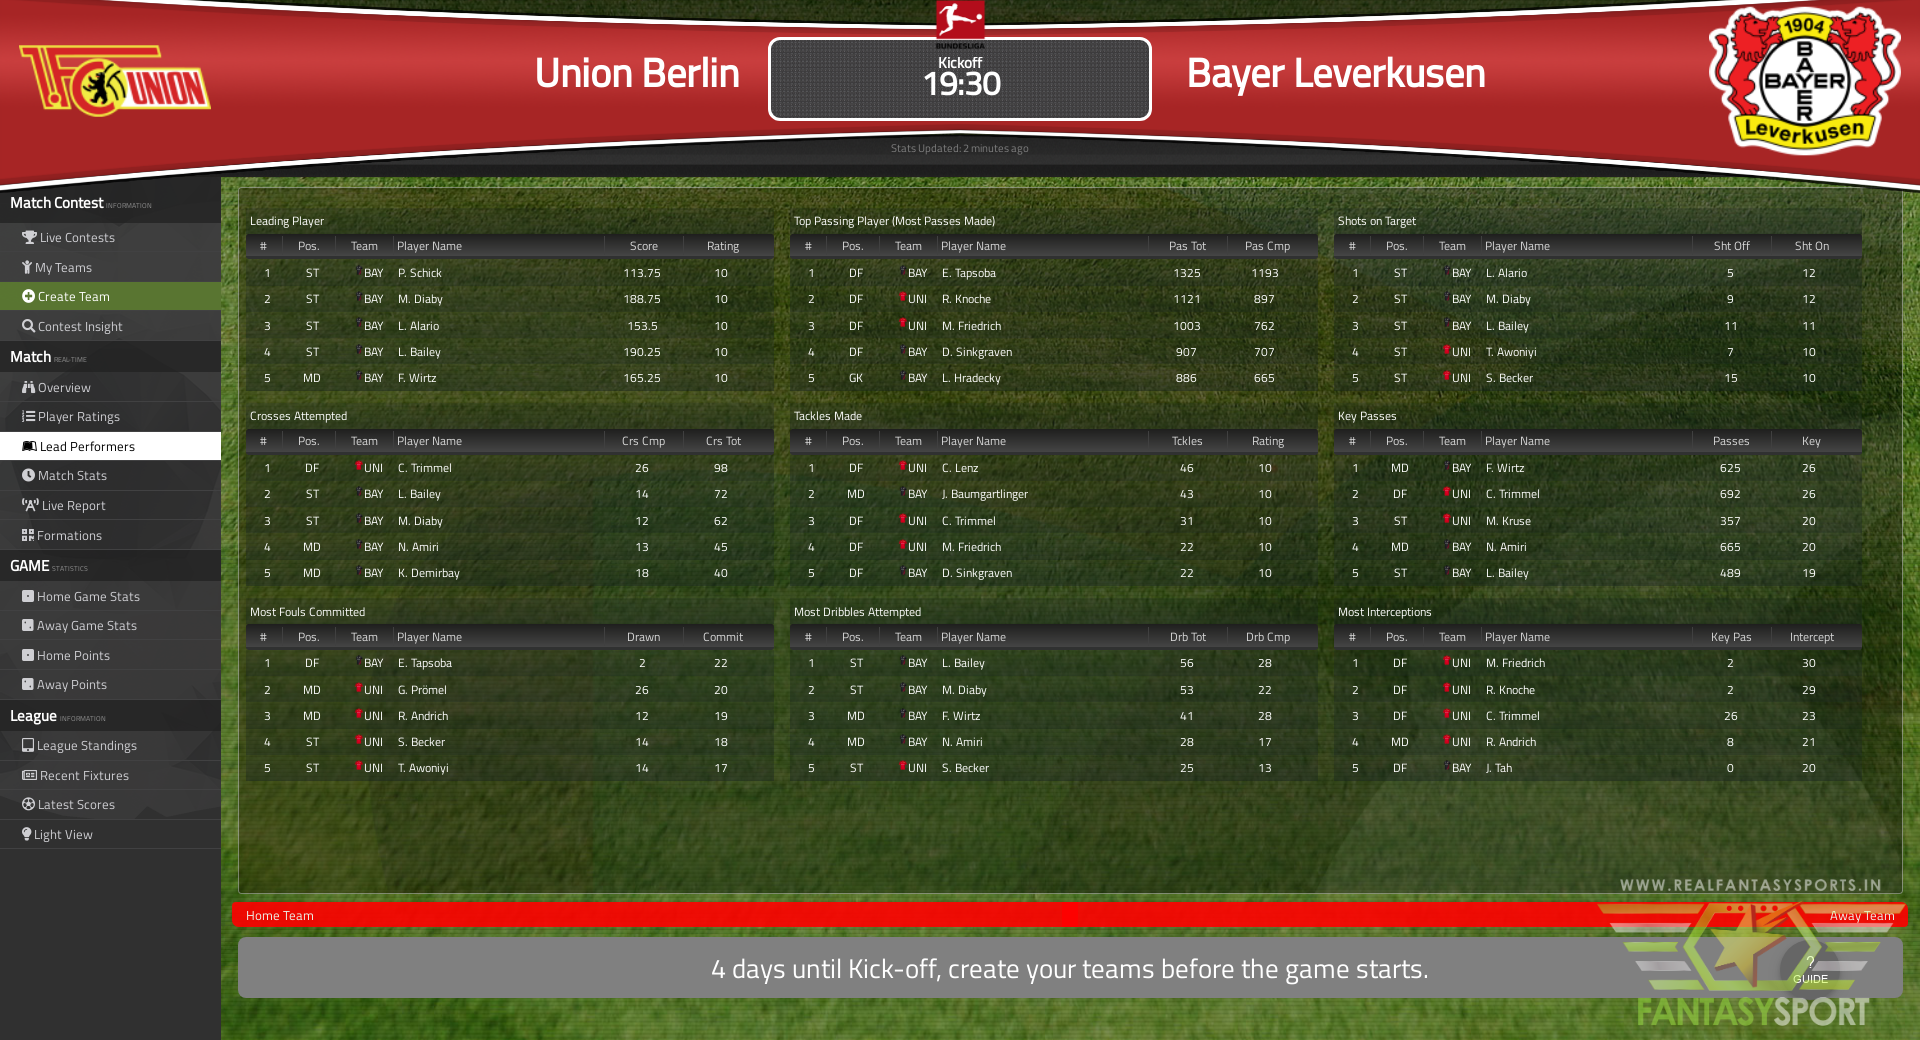 Dream Team Pick For Union Berlin Vs Bayer Leverkusen